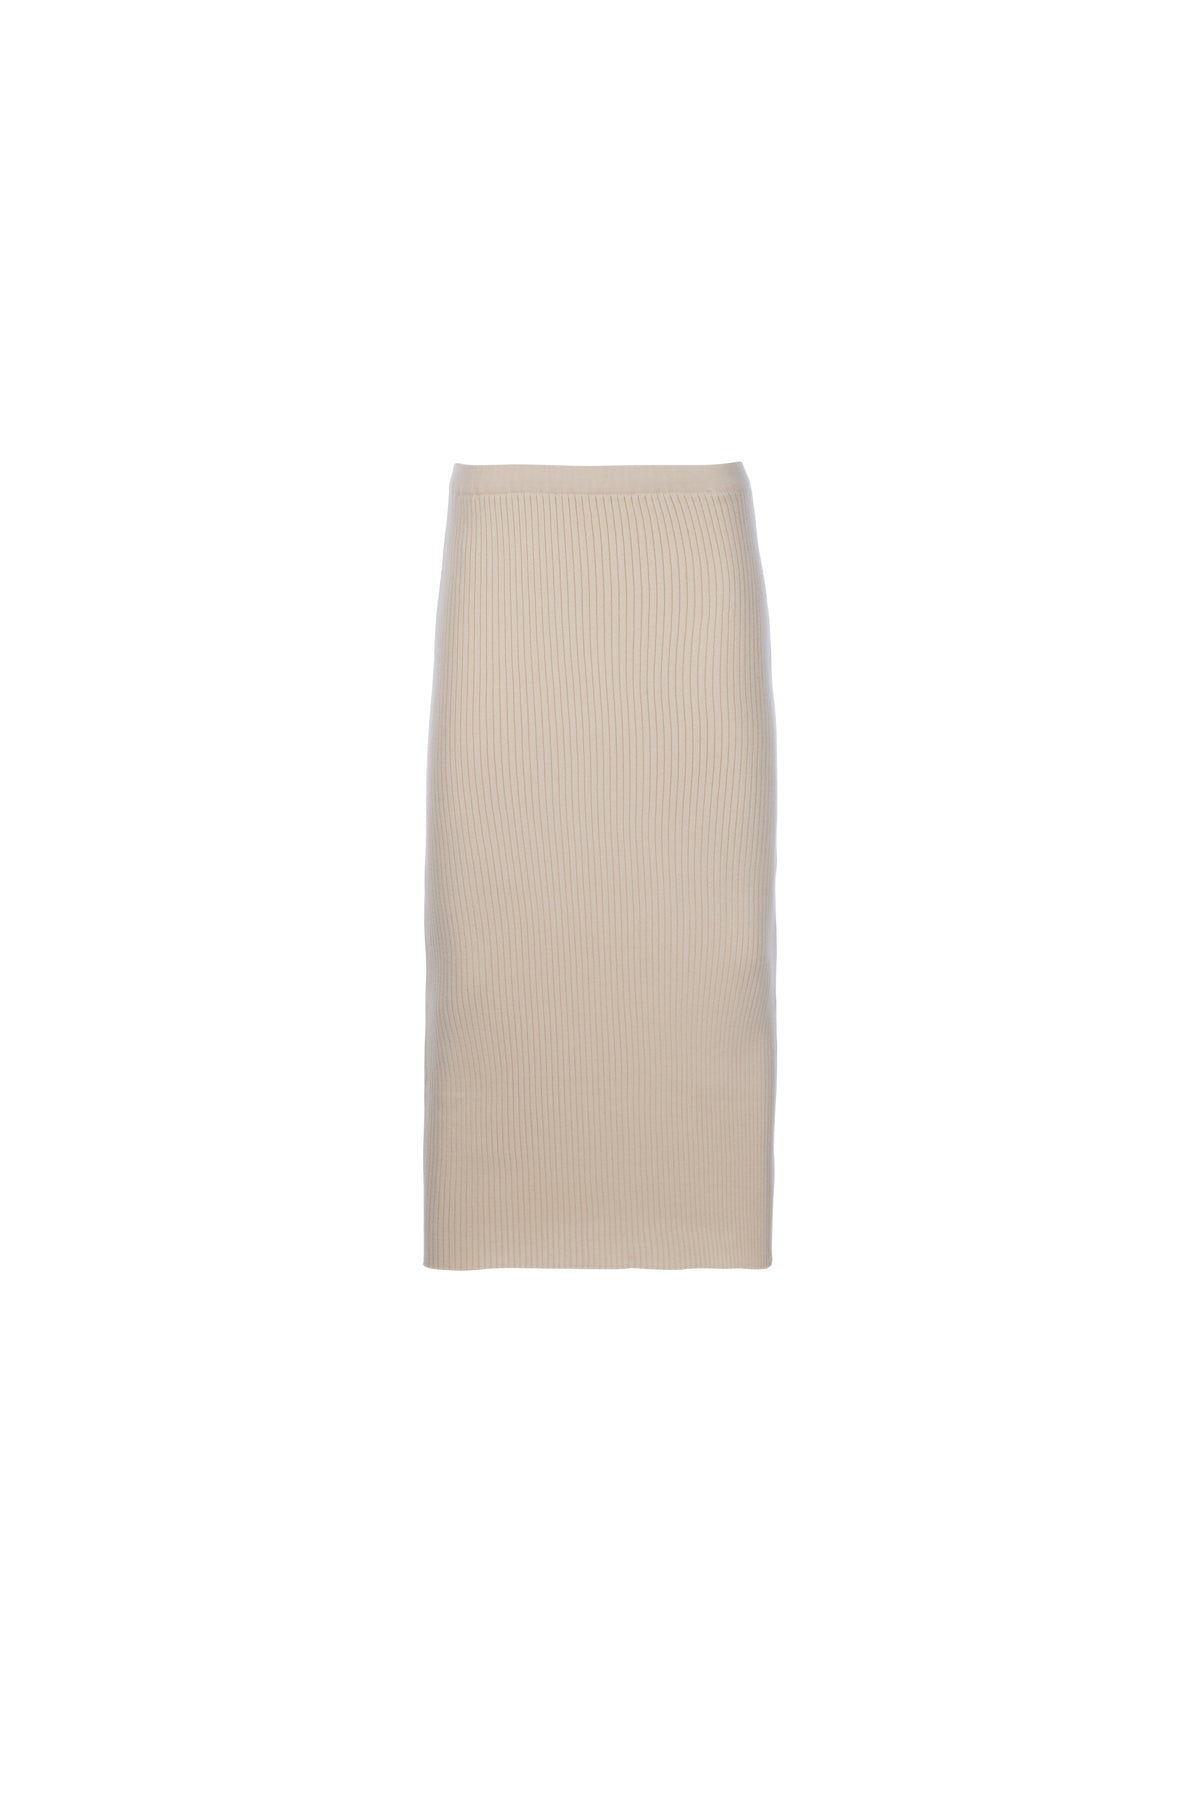 By Signe Damla Knit Skirt in Ecru with a midi silhouette made of stretchy ribbed knit